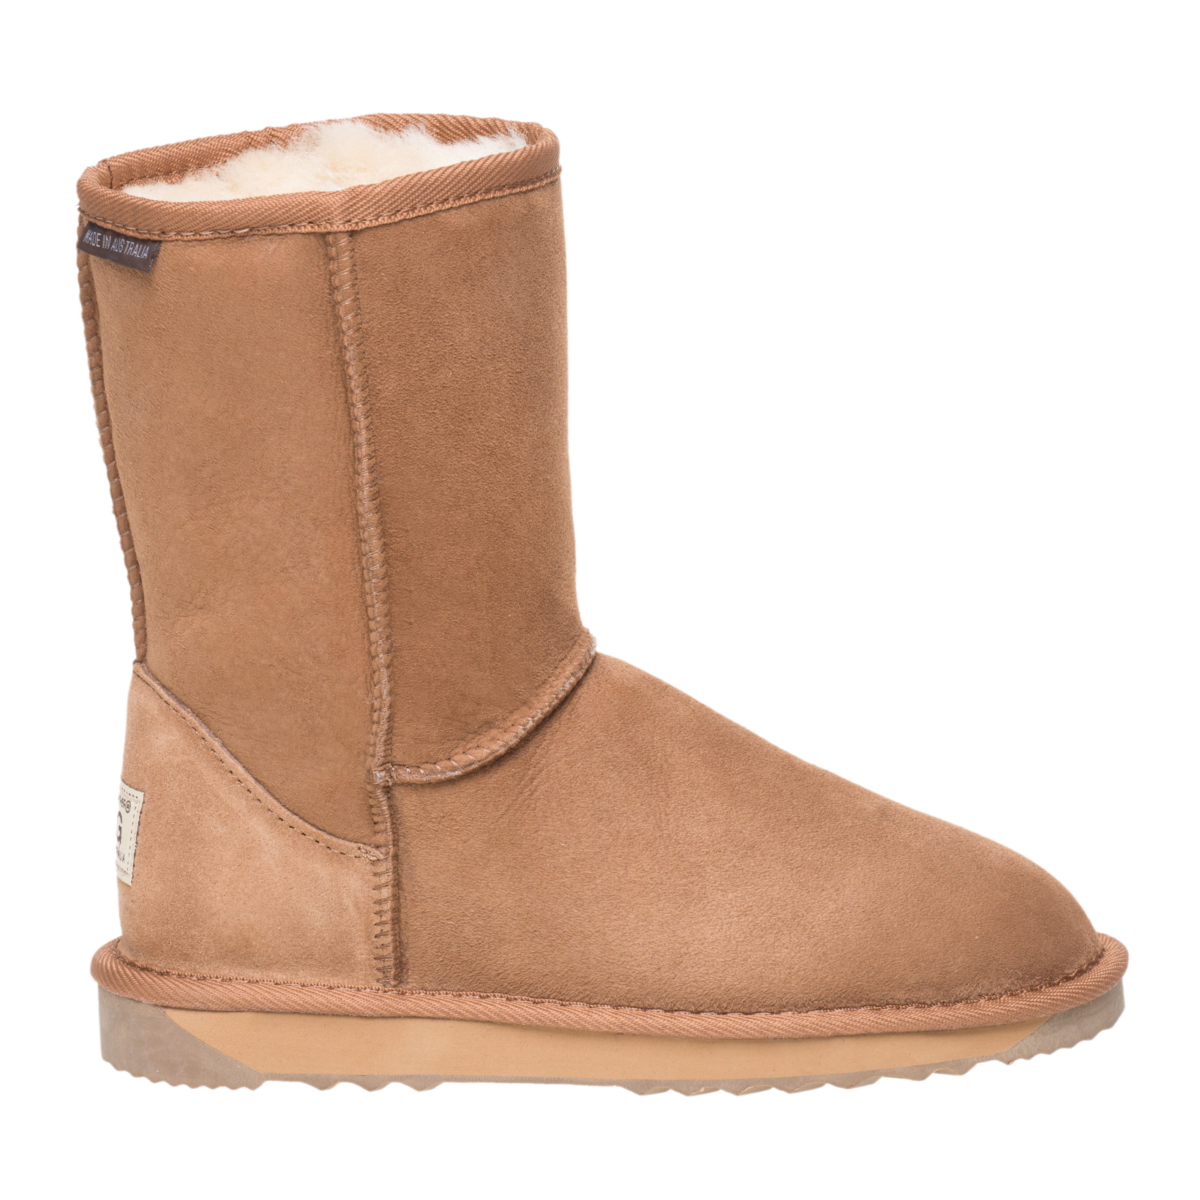 OUTDOOR SHEEPSKIN BOOTS